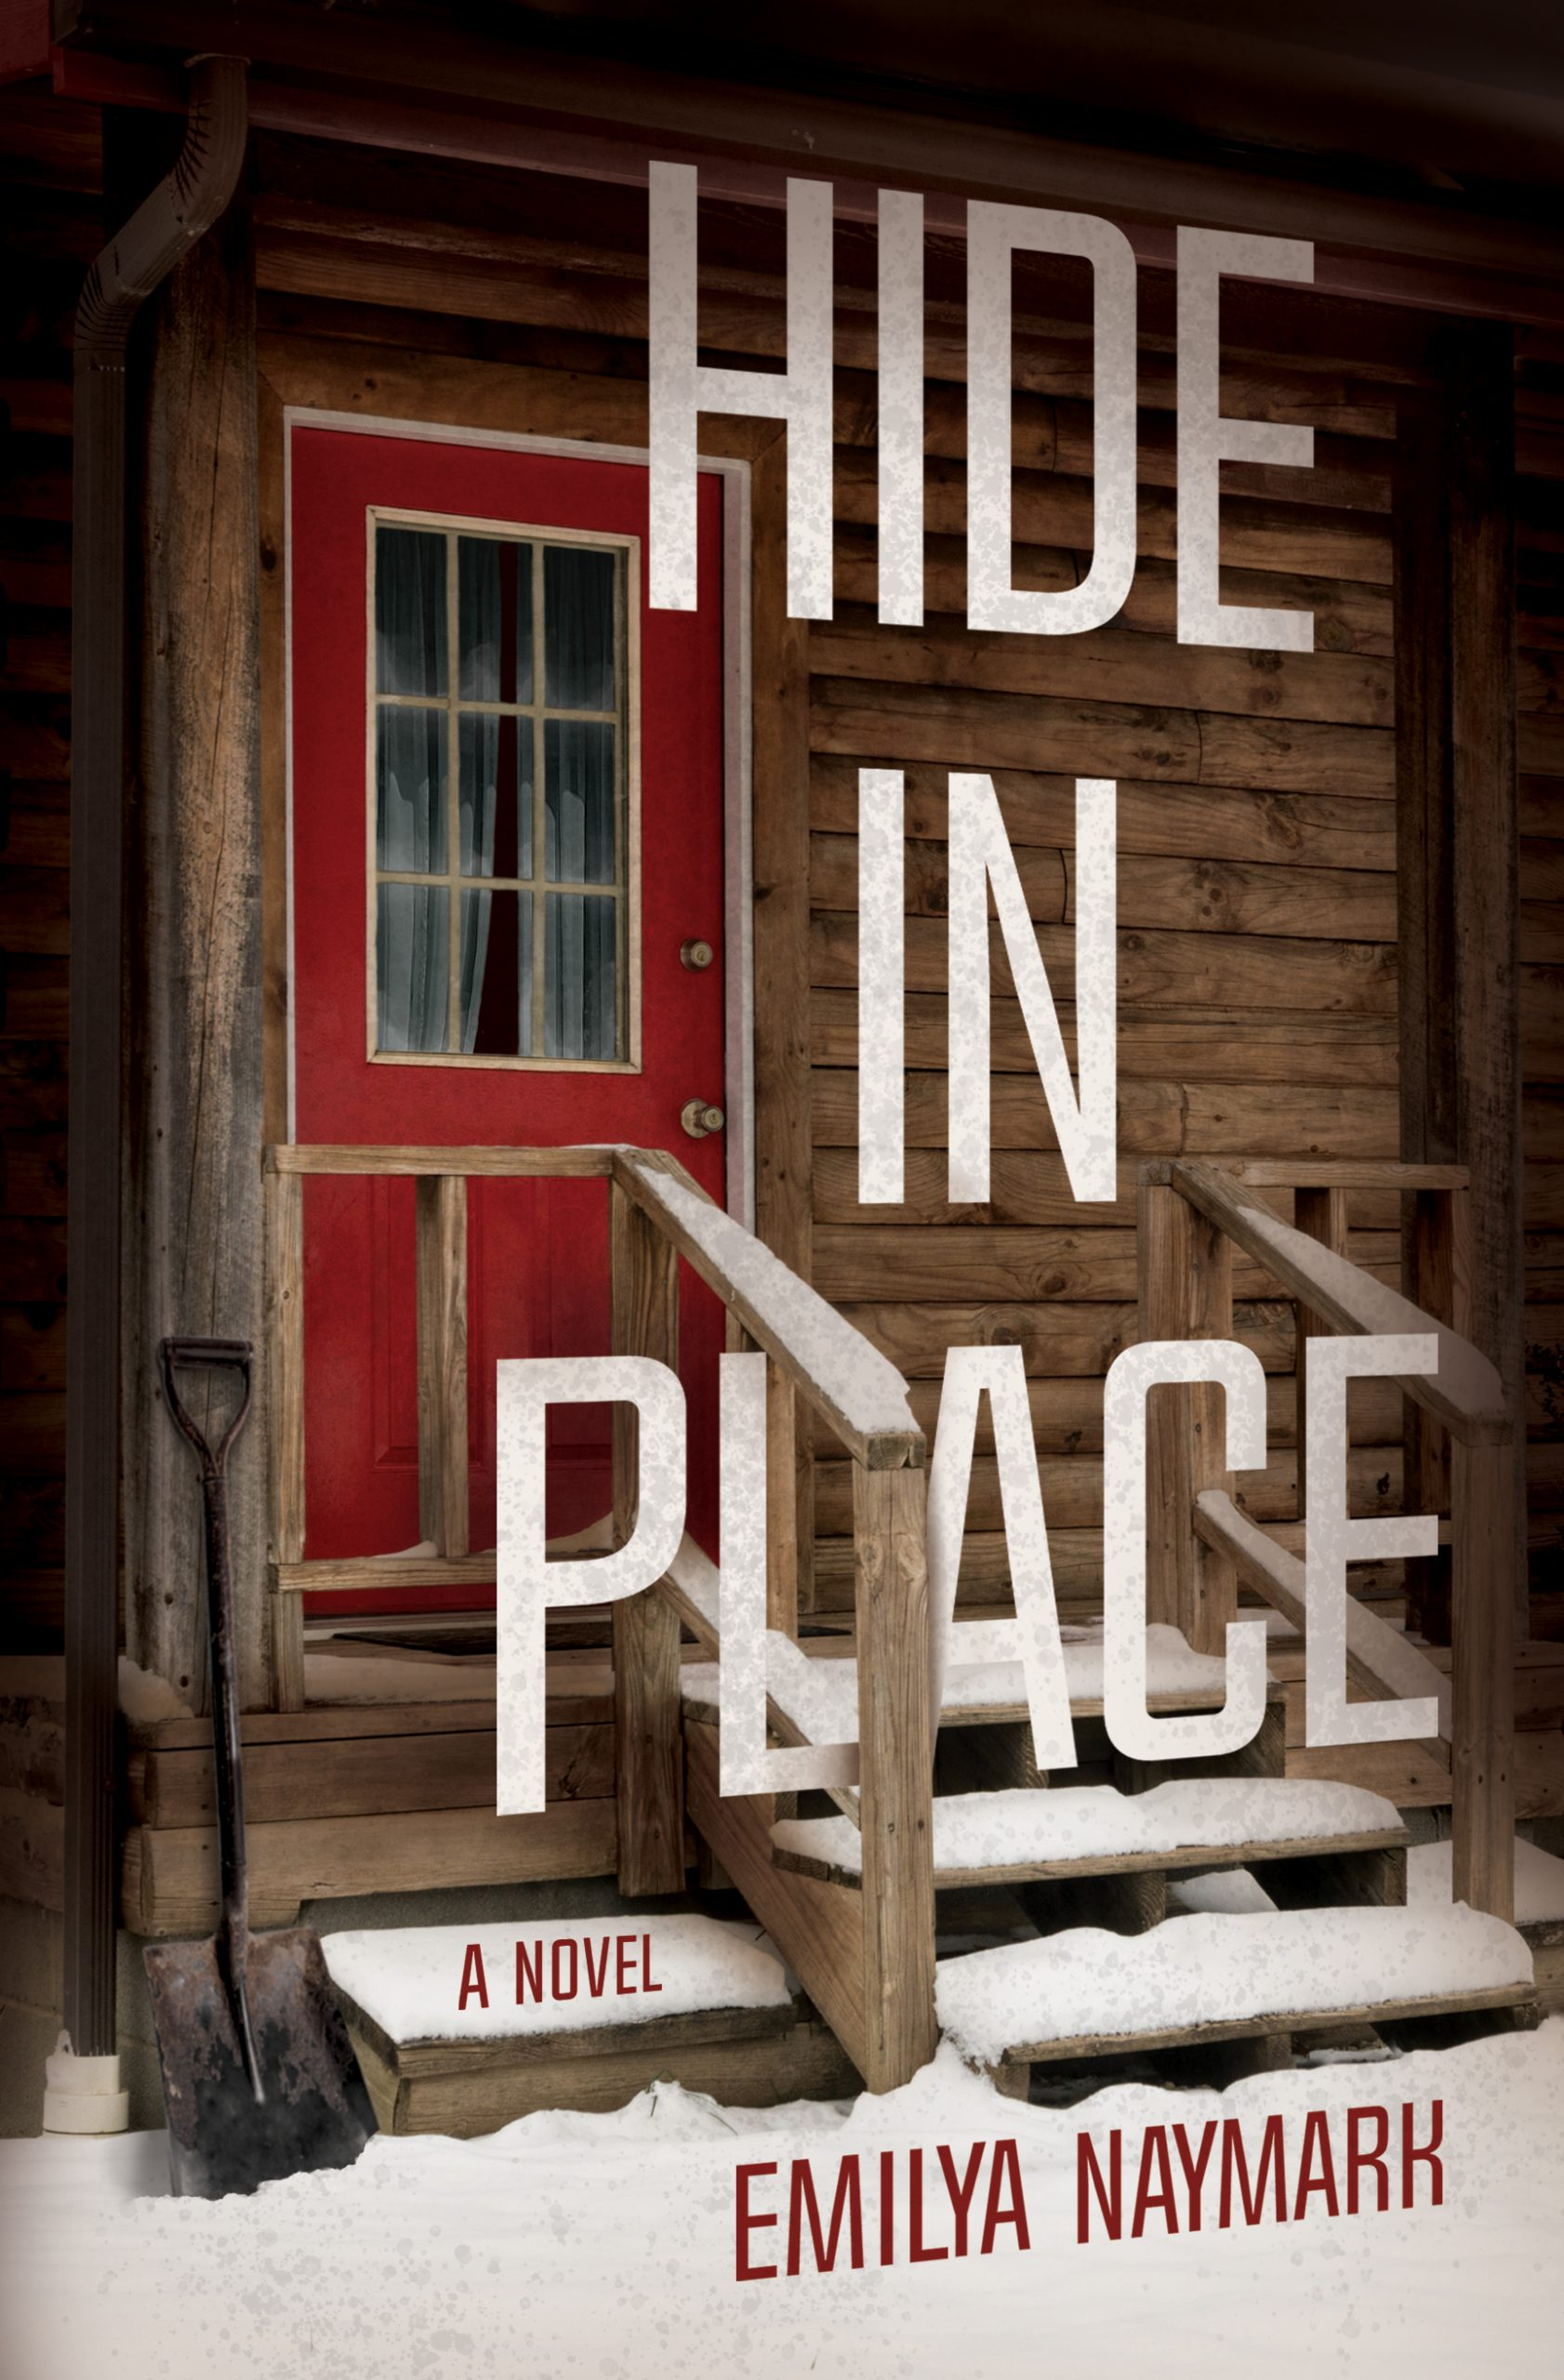 Hide In Place by Emilya Naymark